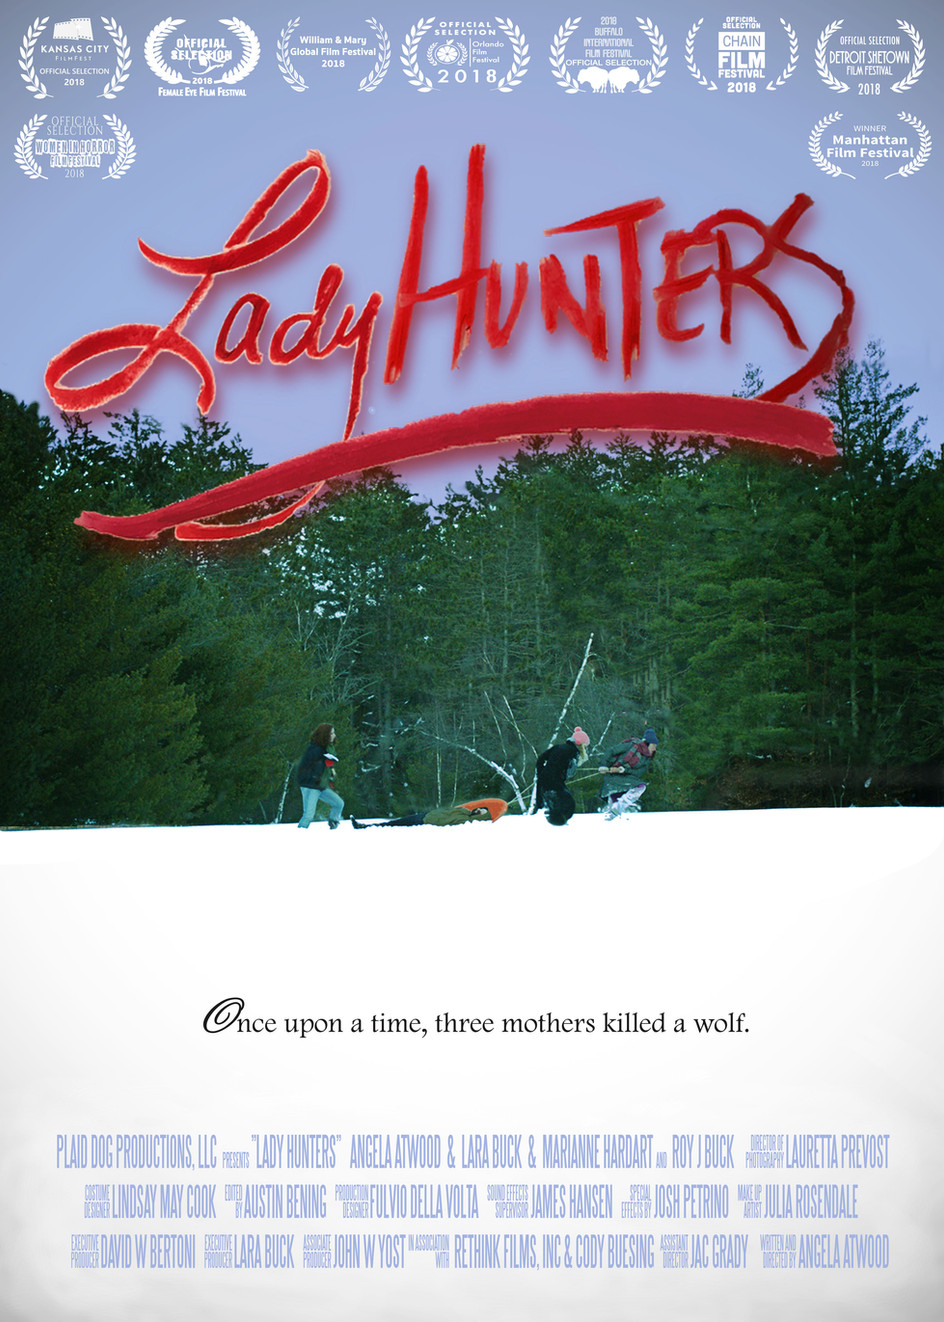 Lady Hunters comes to DETROIT, BUFFALO, ATLANTA, and ORLANDO! Thanks to YOU!